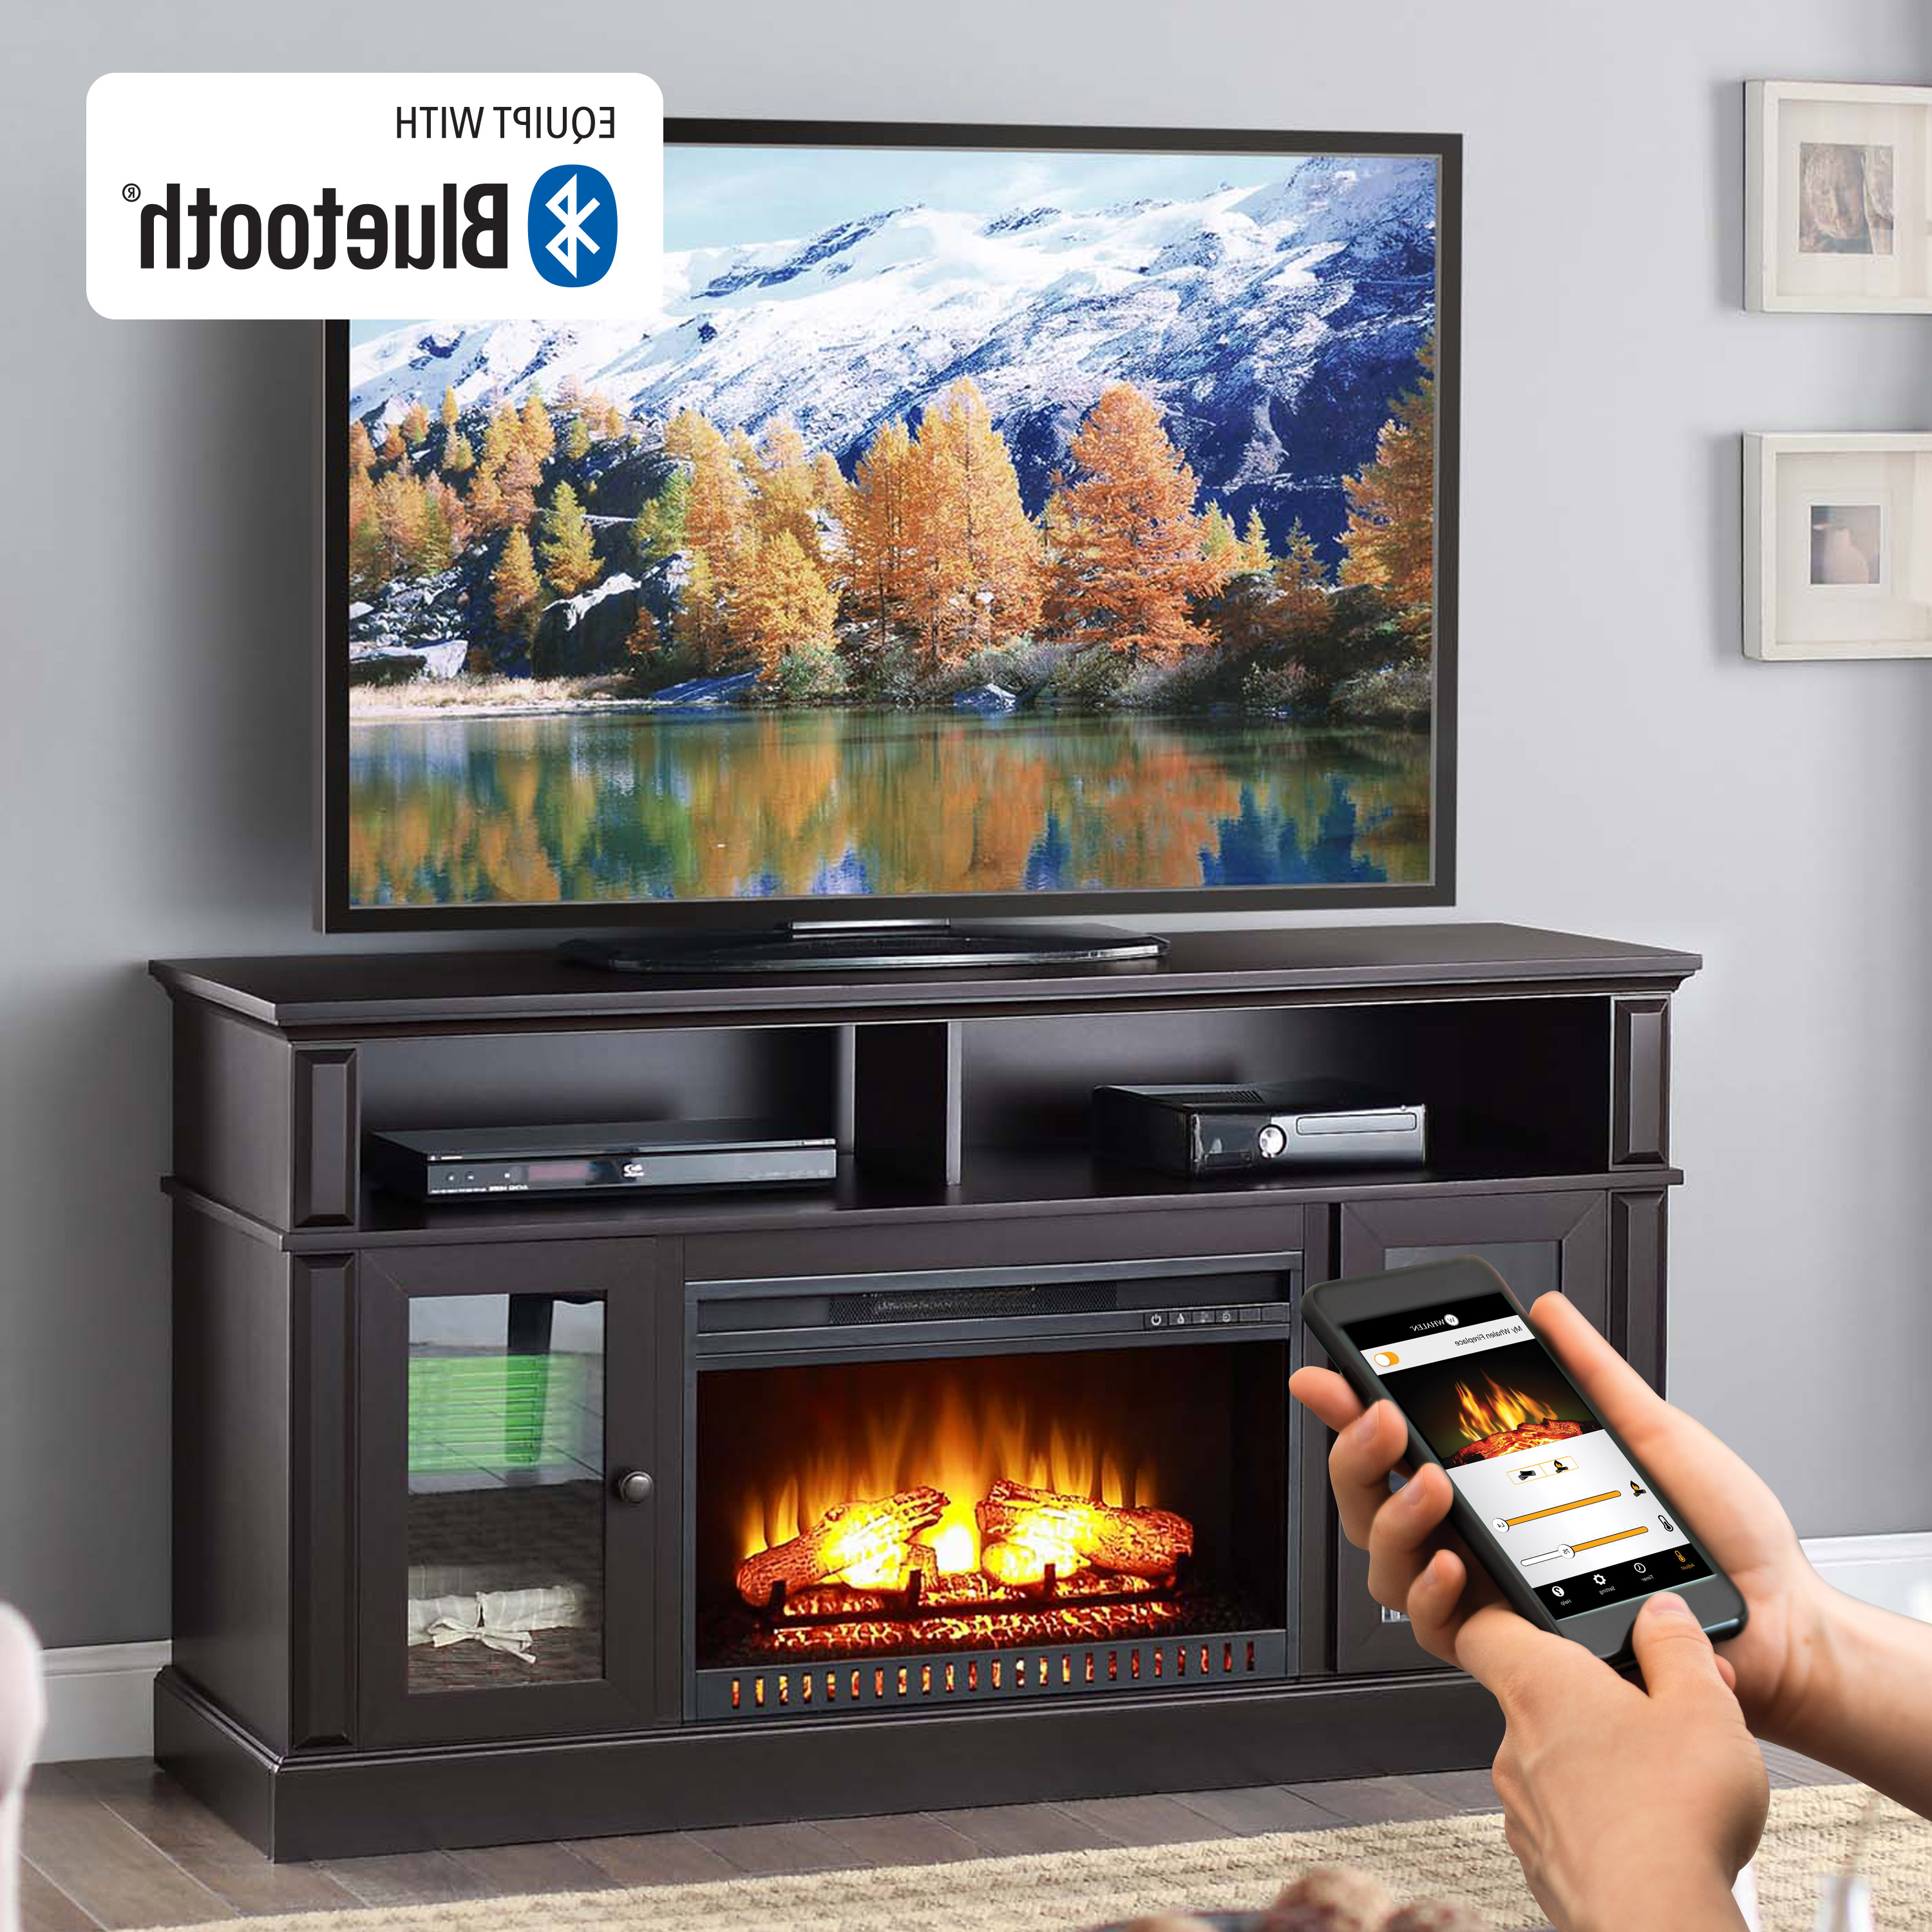 Most Current Tv Stands & Entertainment Centers – Walmart Within Tv Stands With Storage Baskets (View 8 of 20)